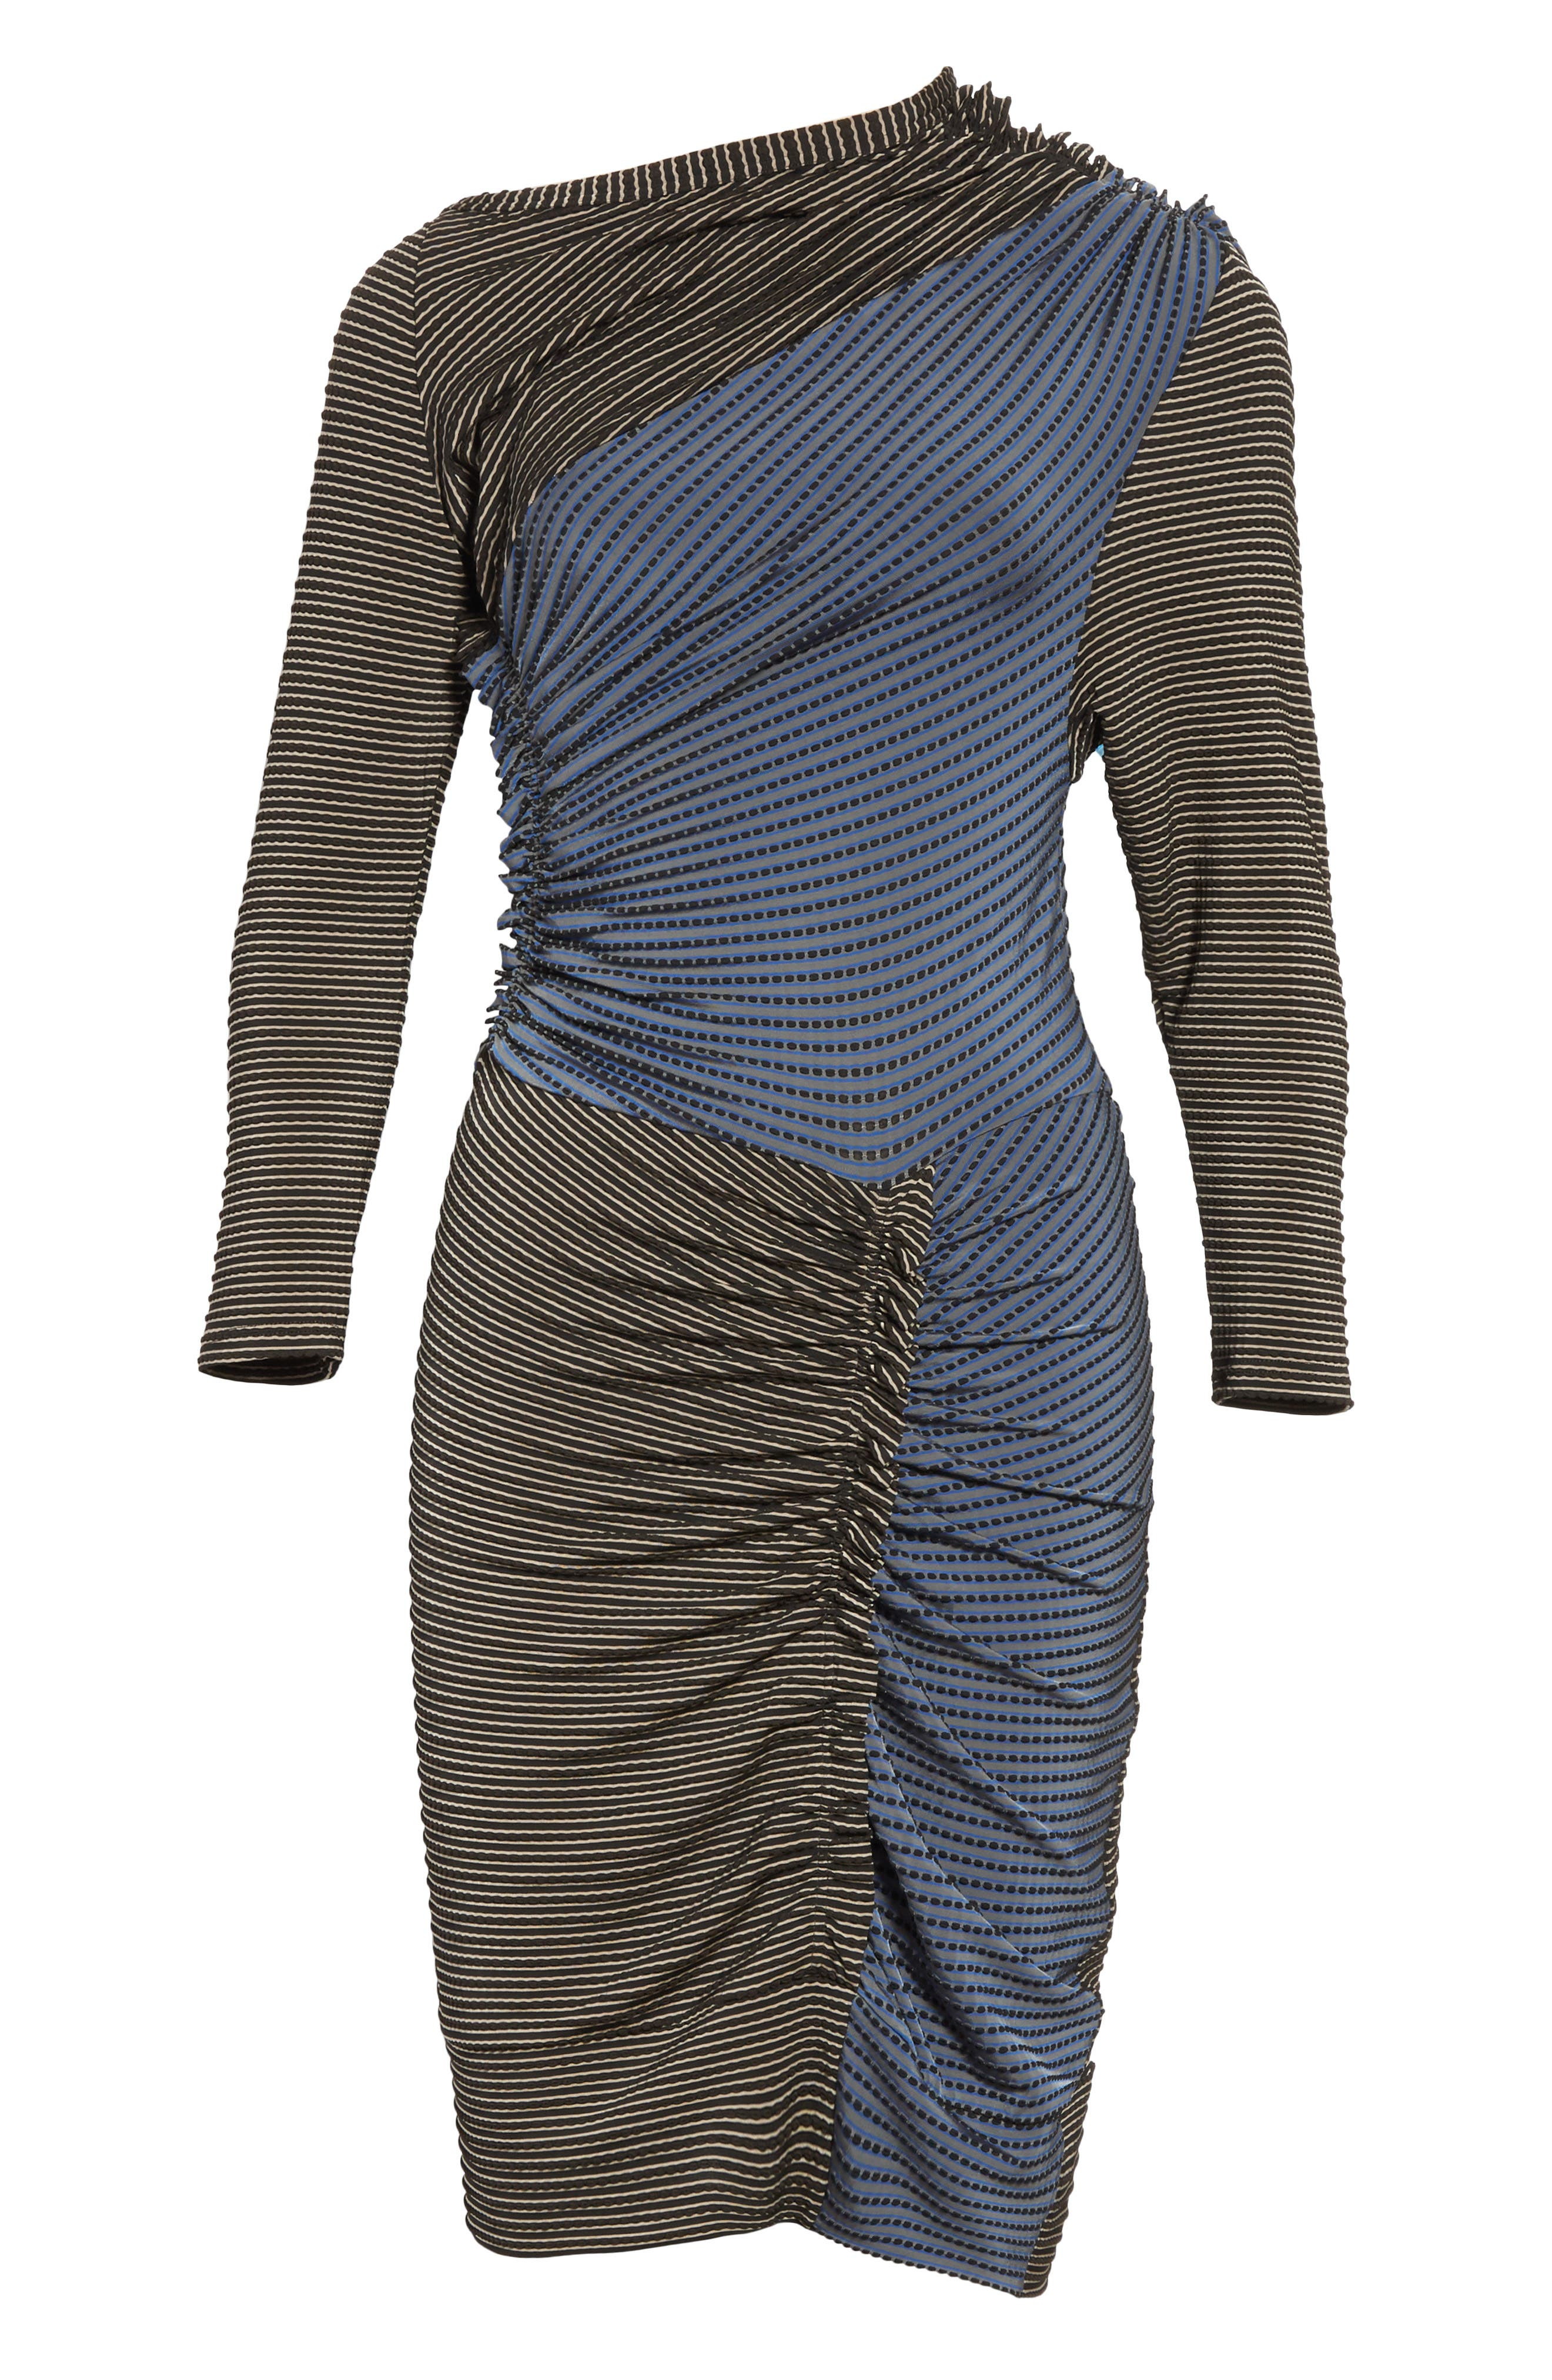 Gathered Jersey Jacquard Dress,                             Alternate thumbnail 6, color,                             400